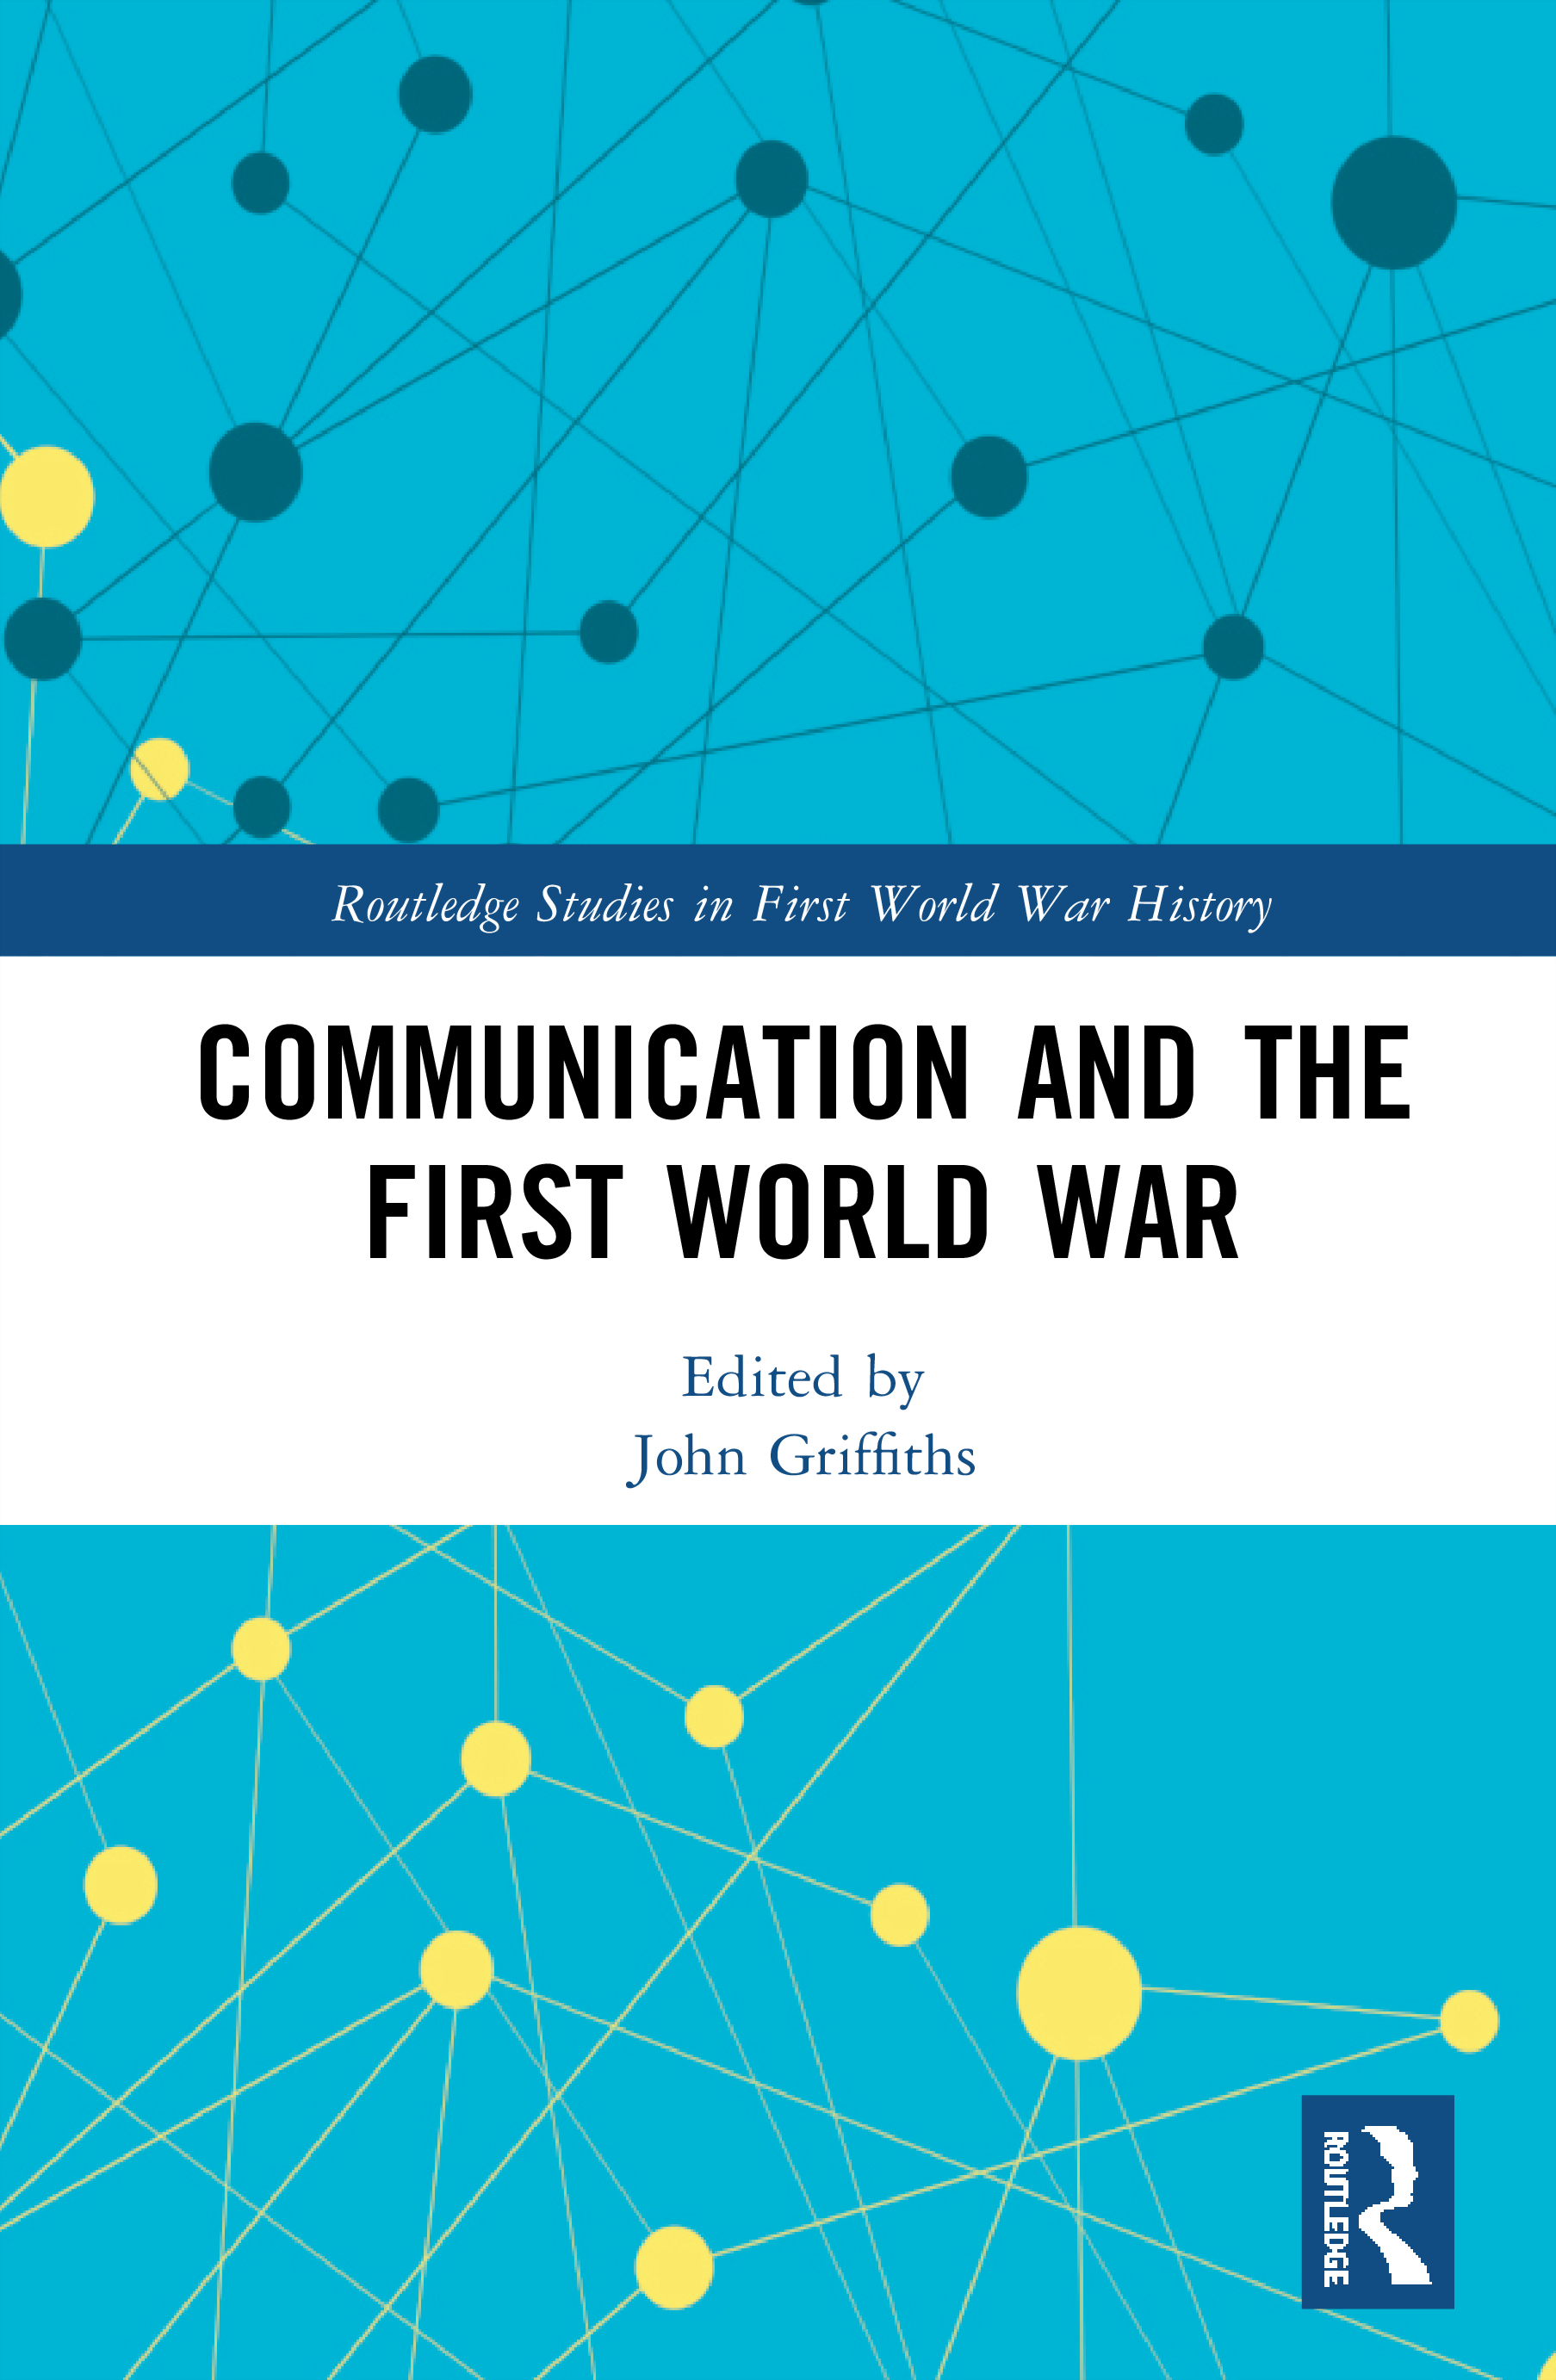 Communication and the Great War book cover